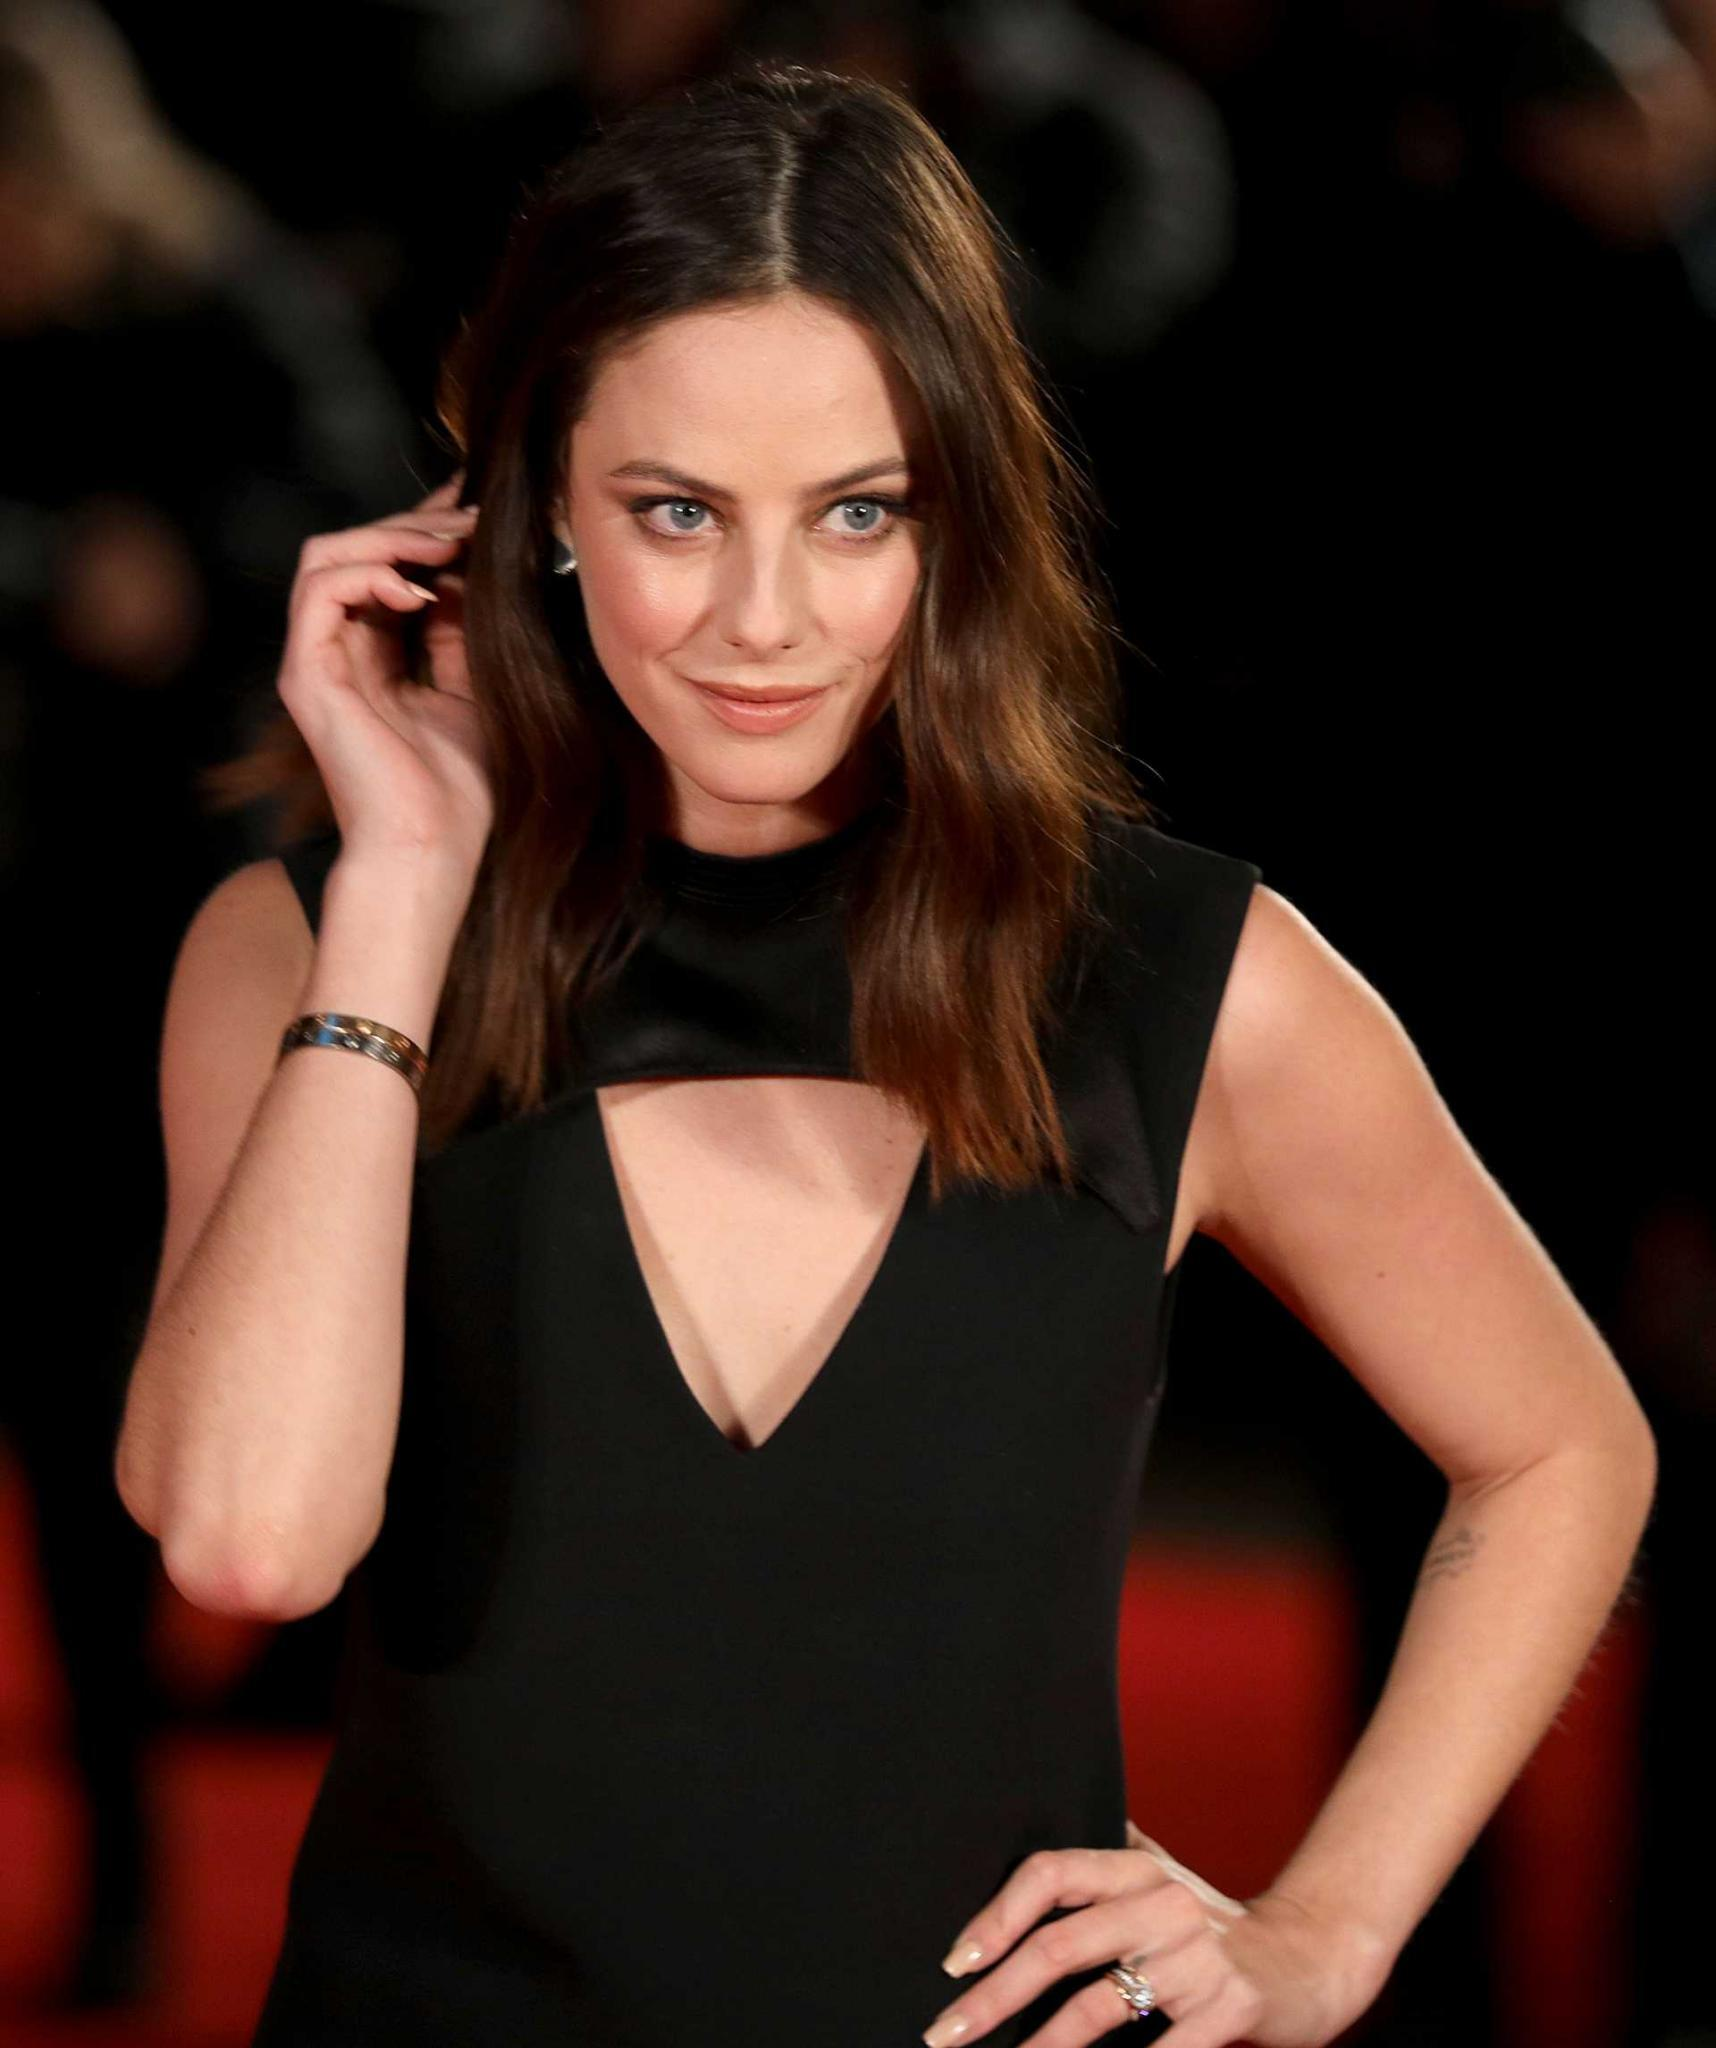 Kaya Scodelario at the Fan Screening of 'Maze Runner: The Death Cure' in London